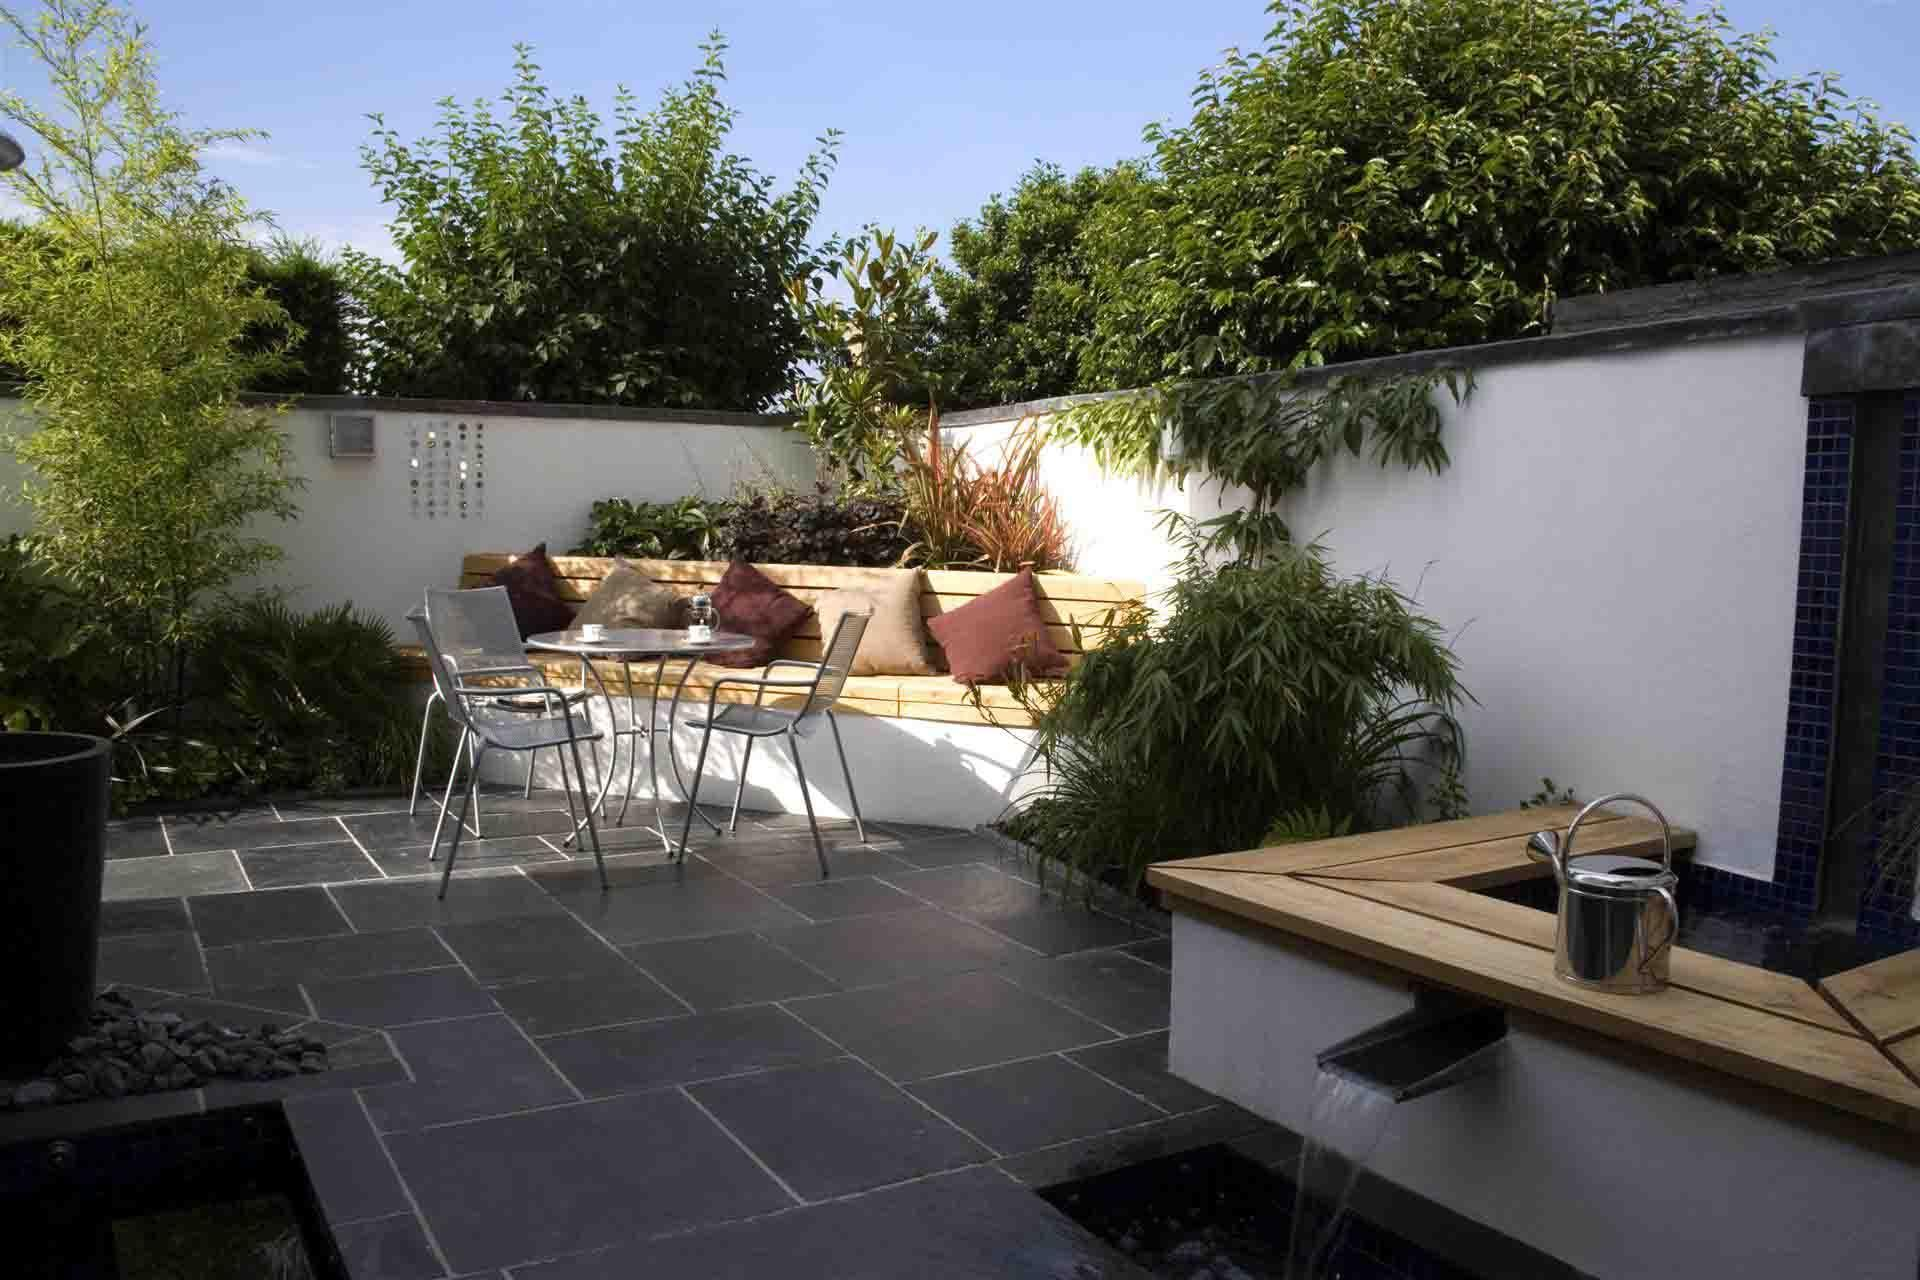 backyard outdoor garden with corner seating space complete with the